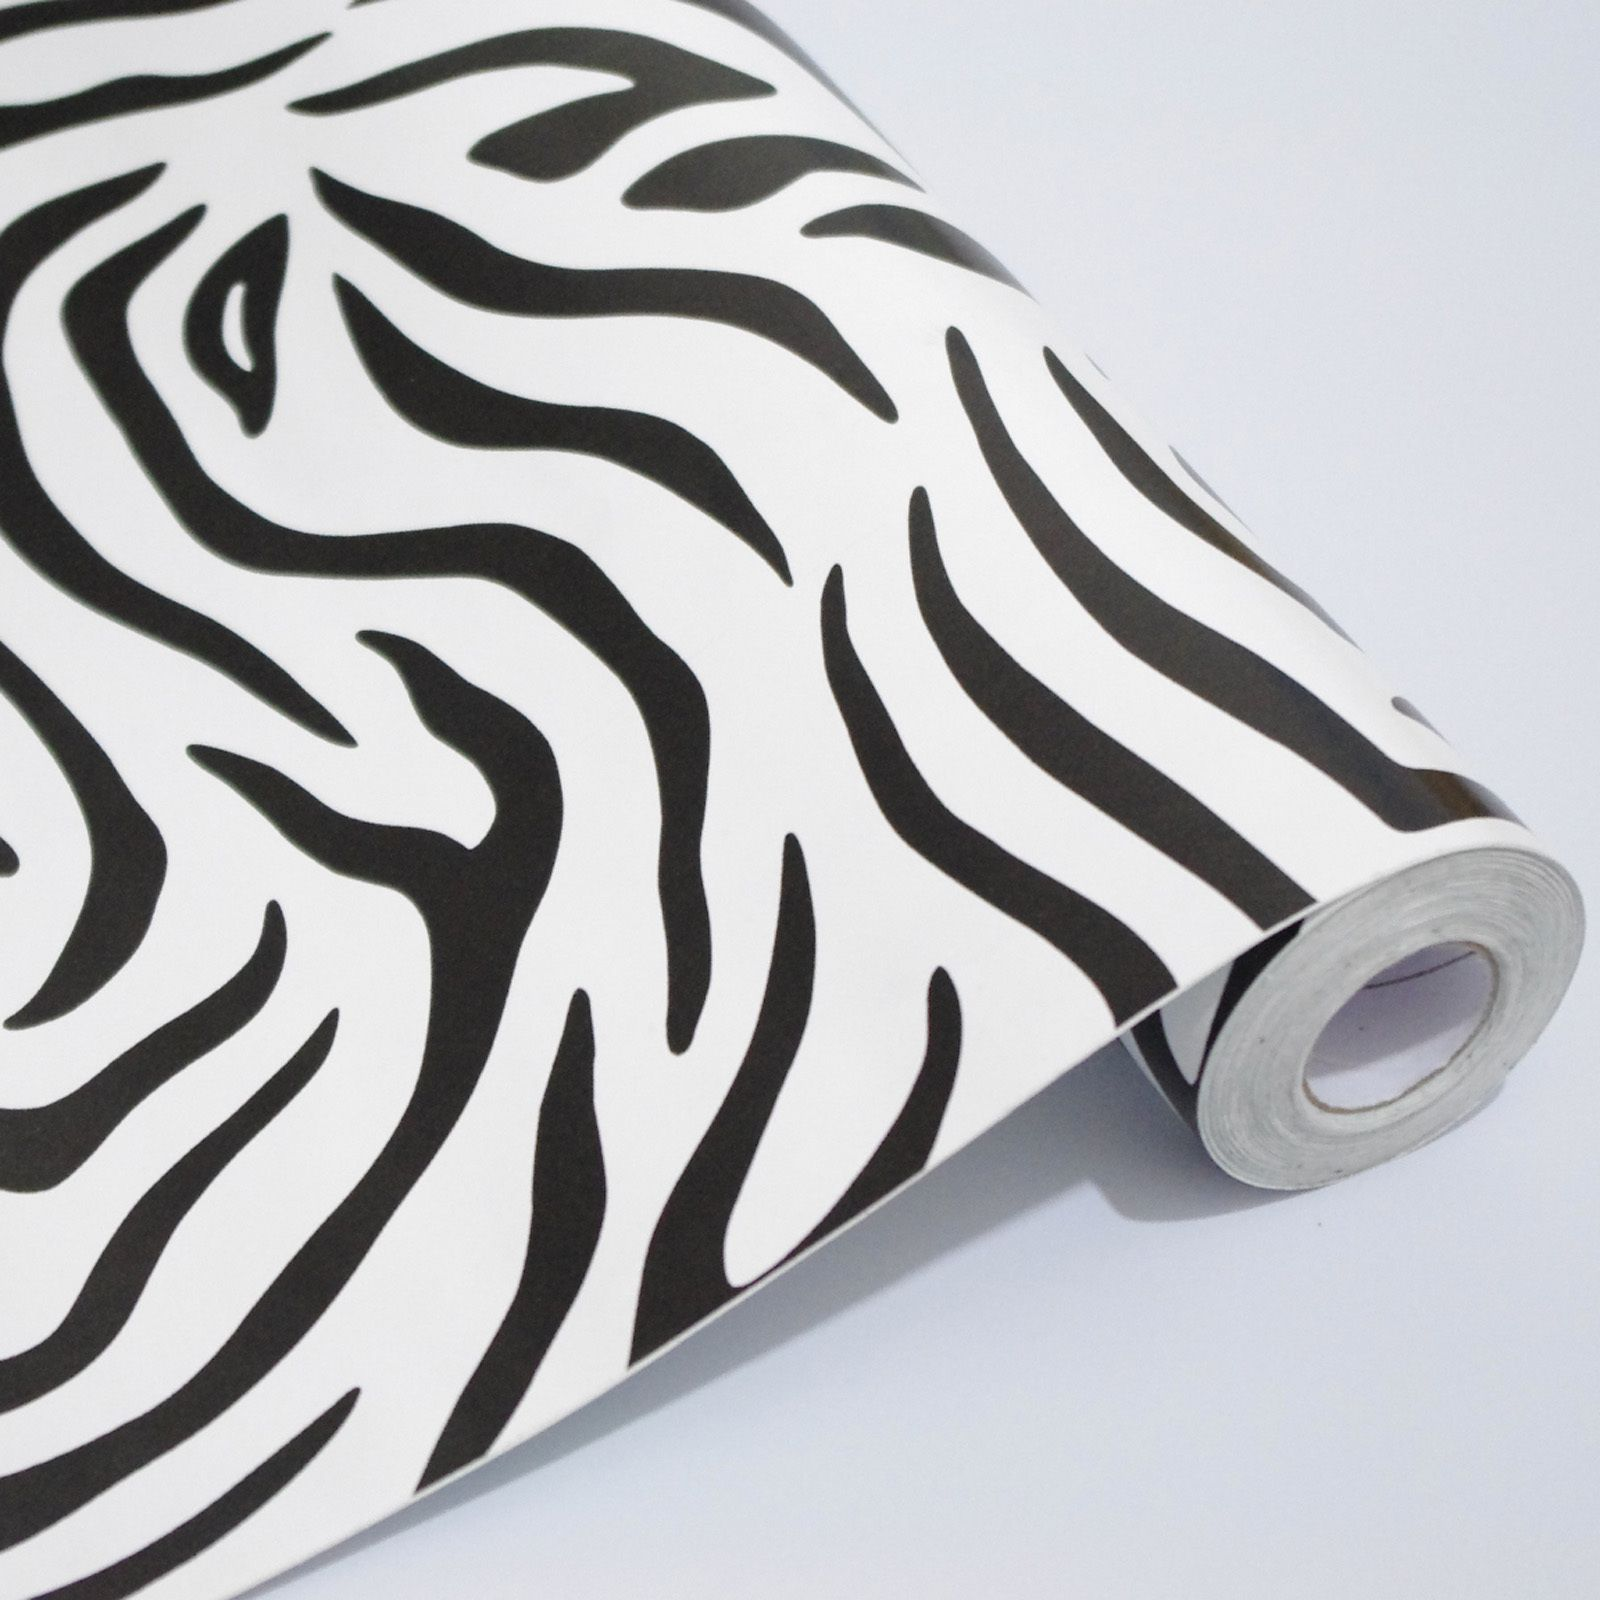 Beautiful Zebra Stick On For Furniture | Zebra Vinyl Roll Price,Zebra Vinyl Roll  Price Trends. Zebra Print BedroomZebra ... Awesome Design